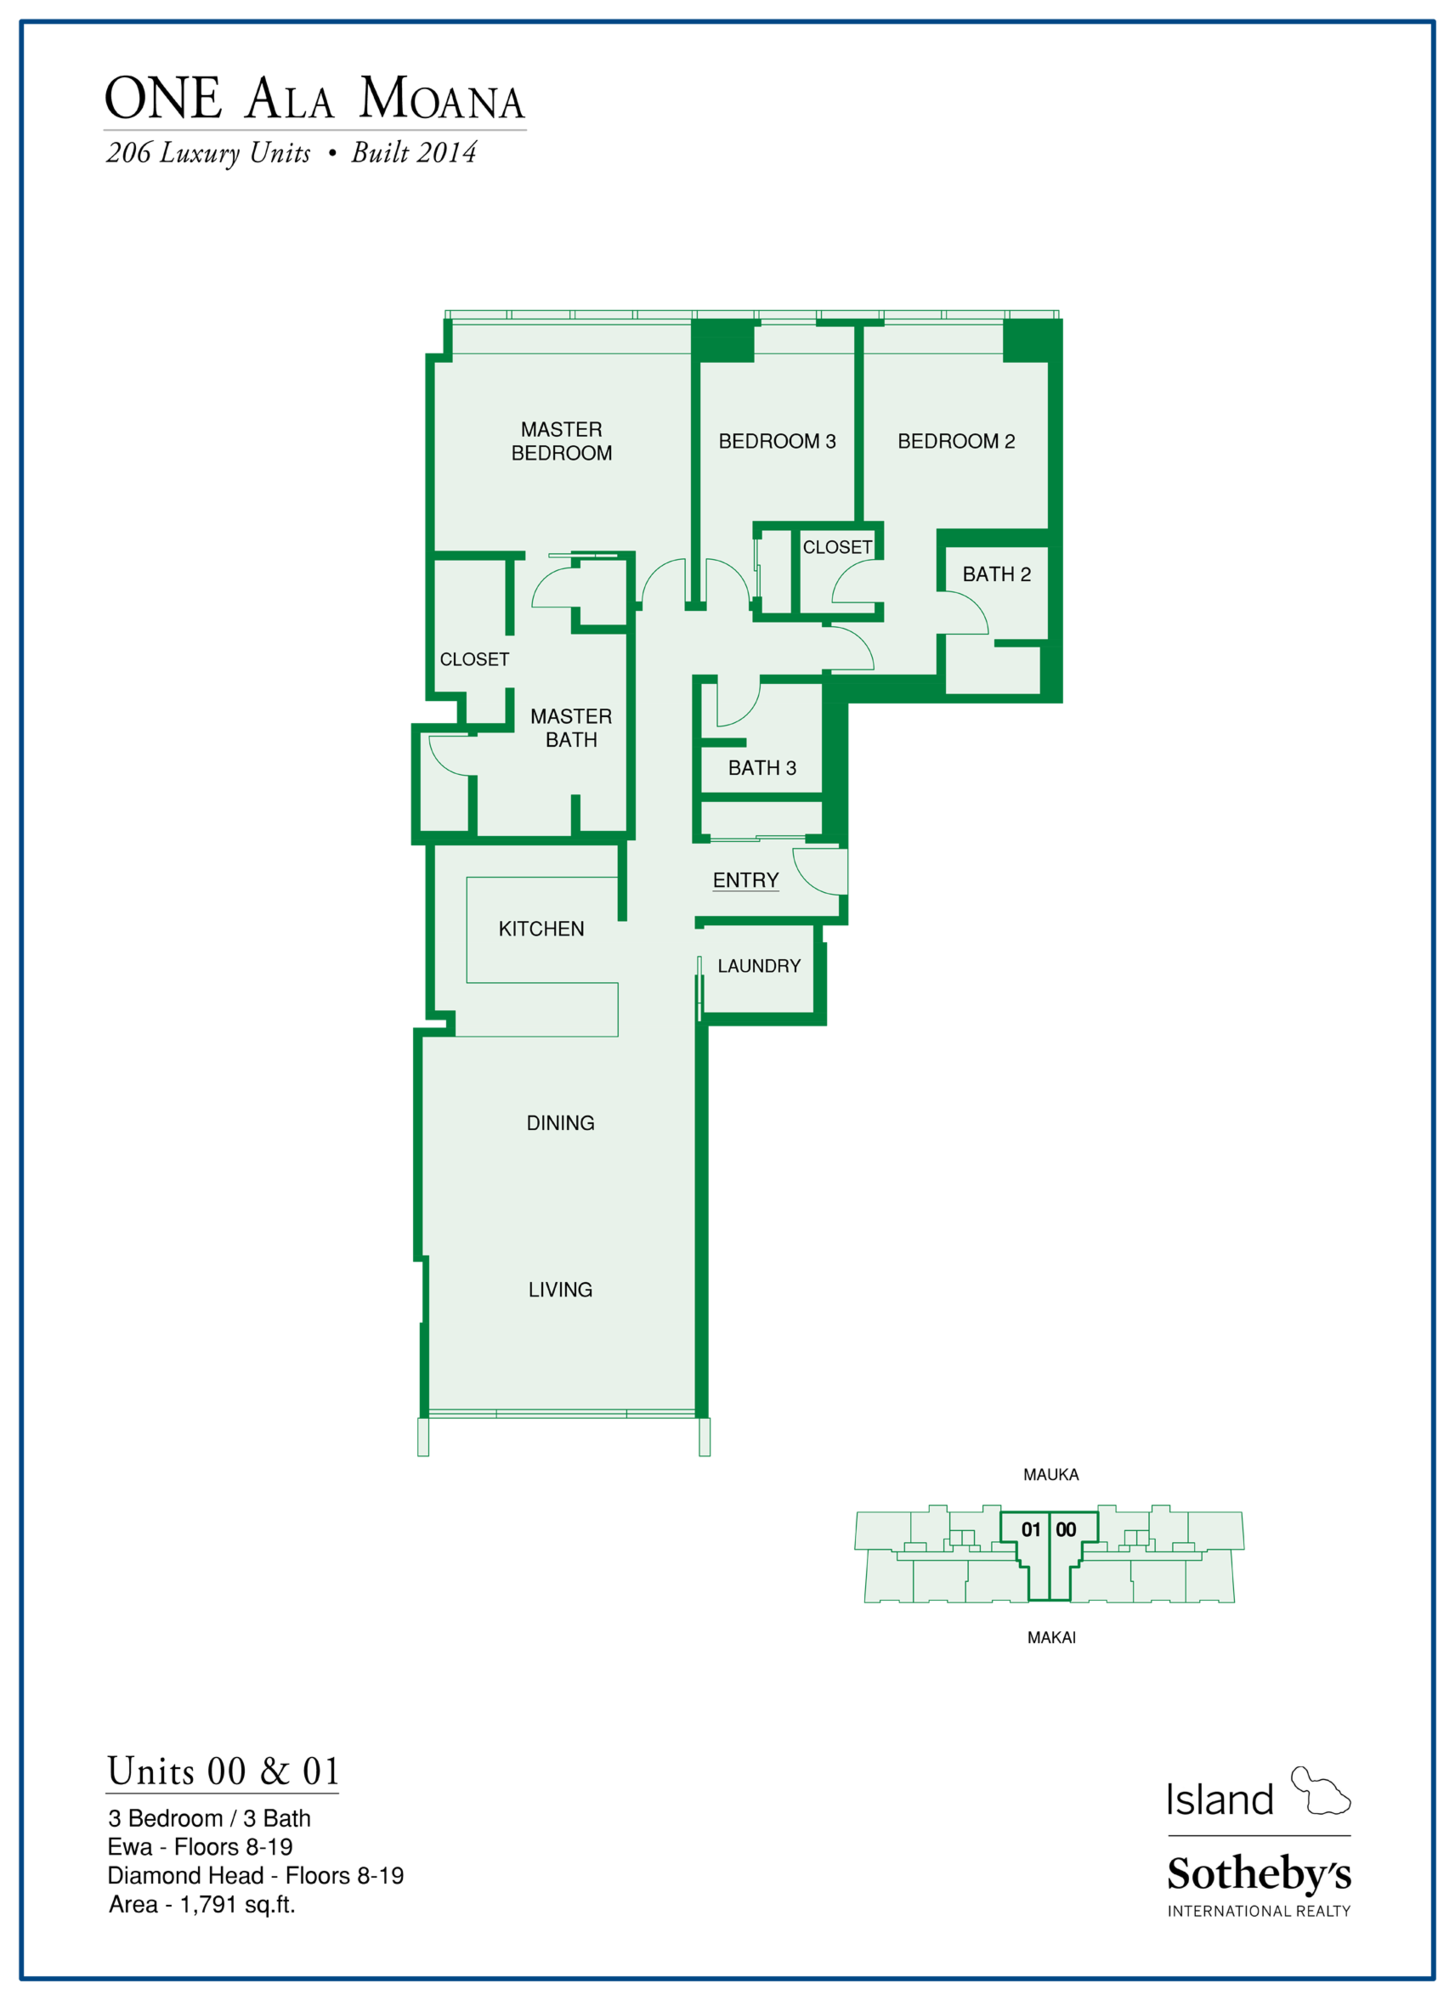 one ala moana typical floor plan